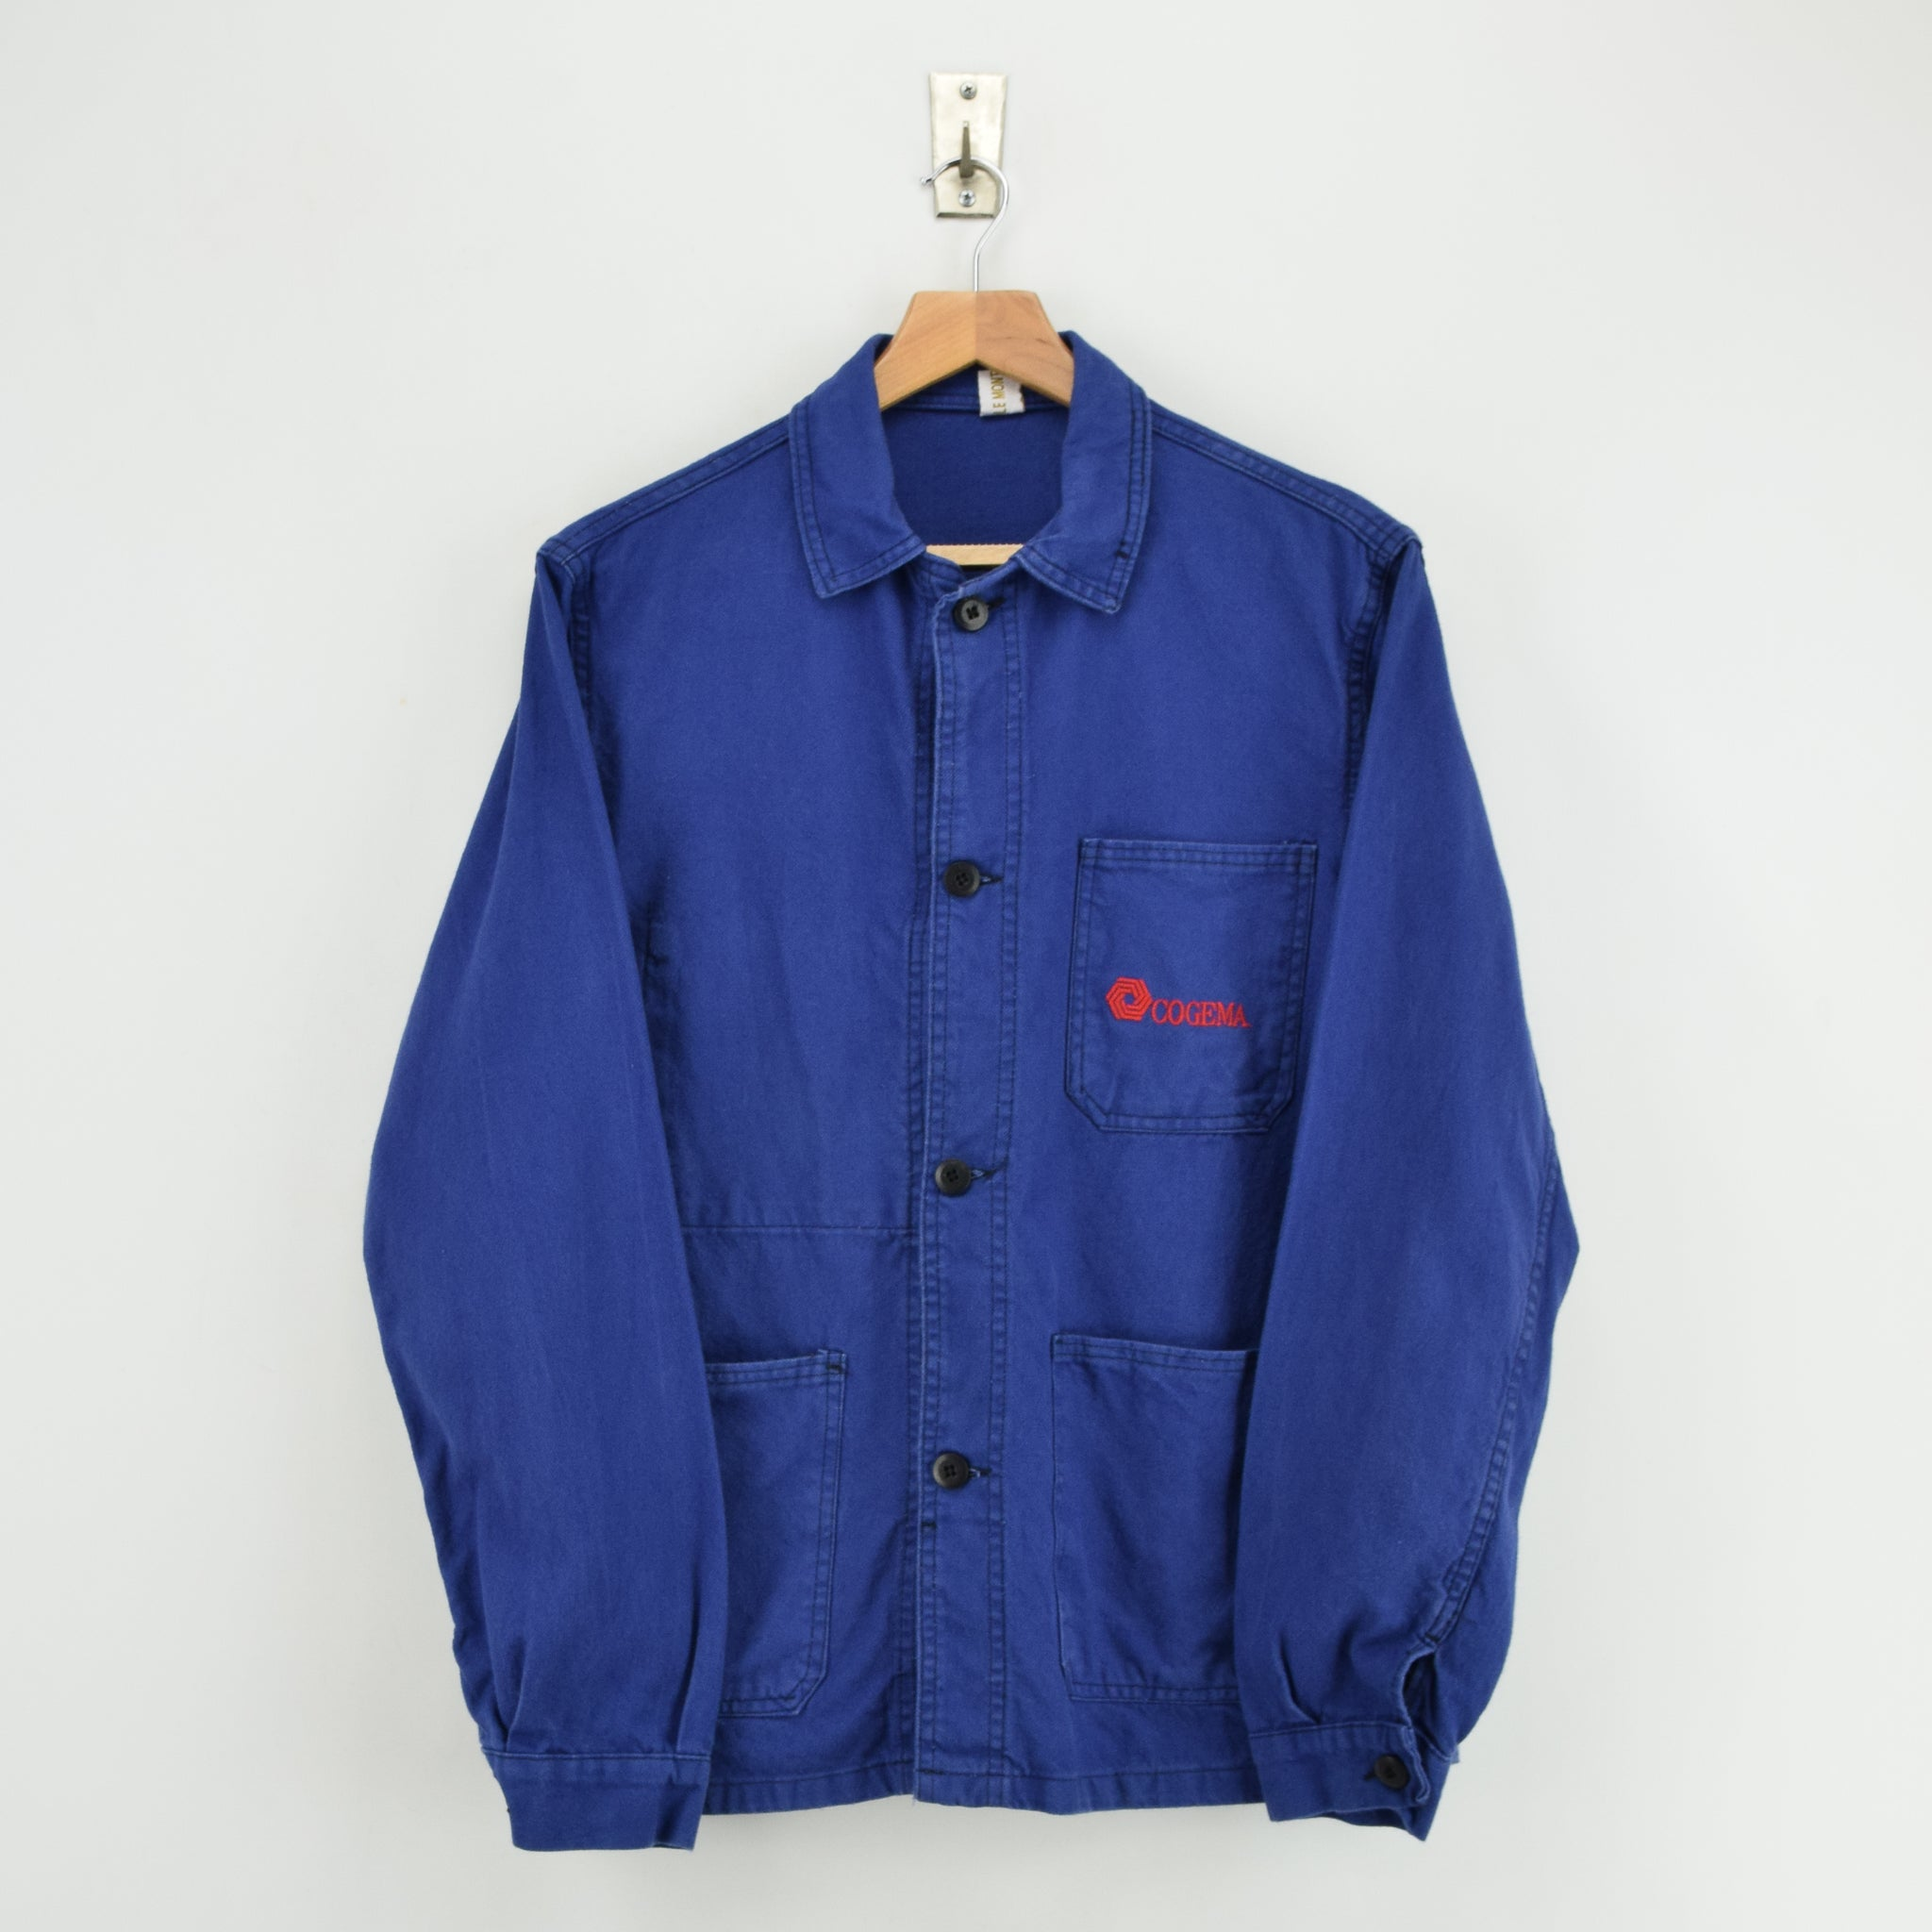 Vintage Washed Dark Blue French Worker Sanforized Cotton Chore Jacket S front